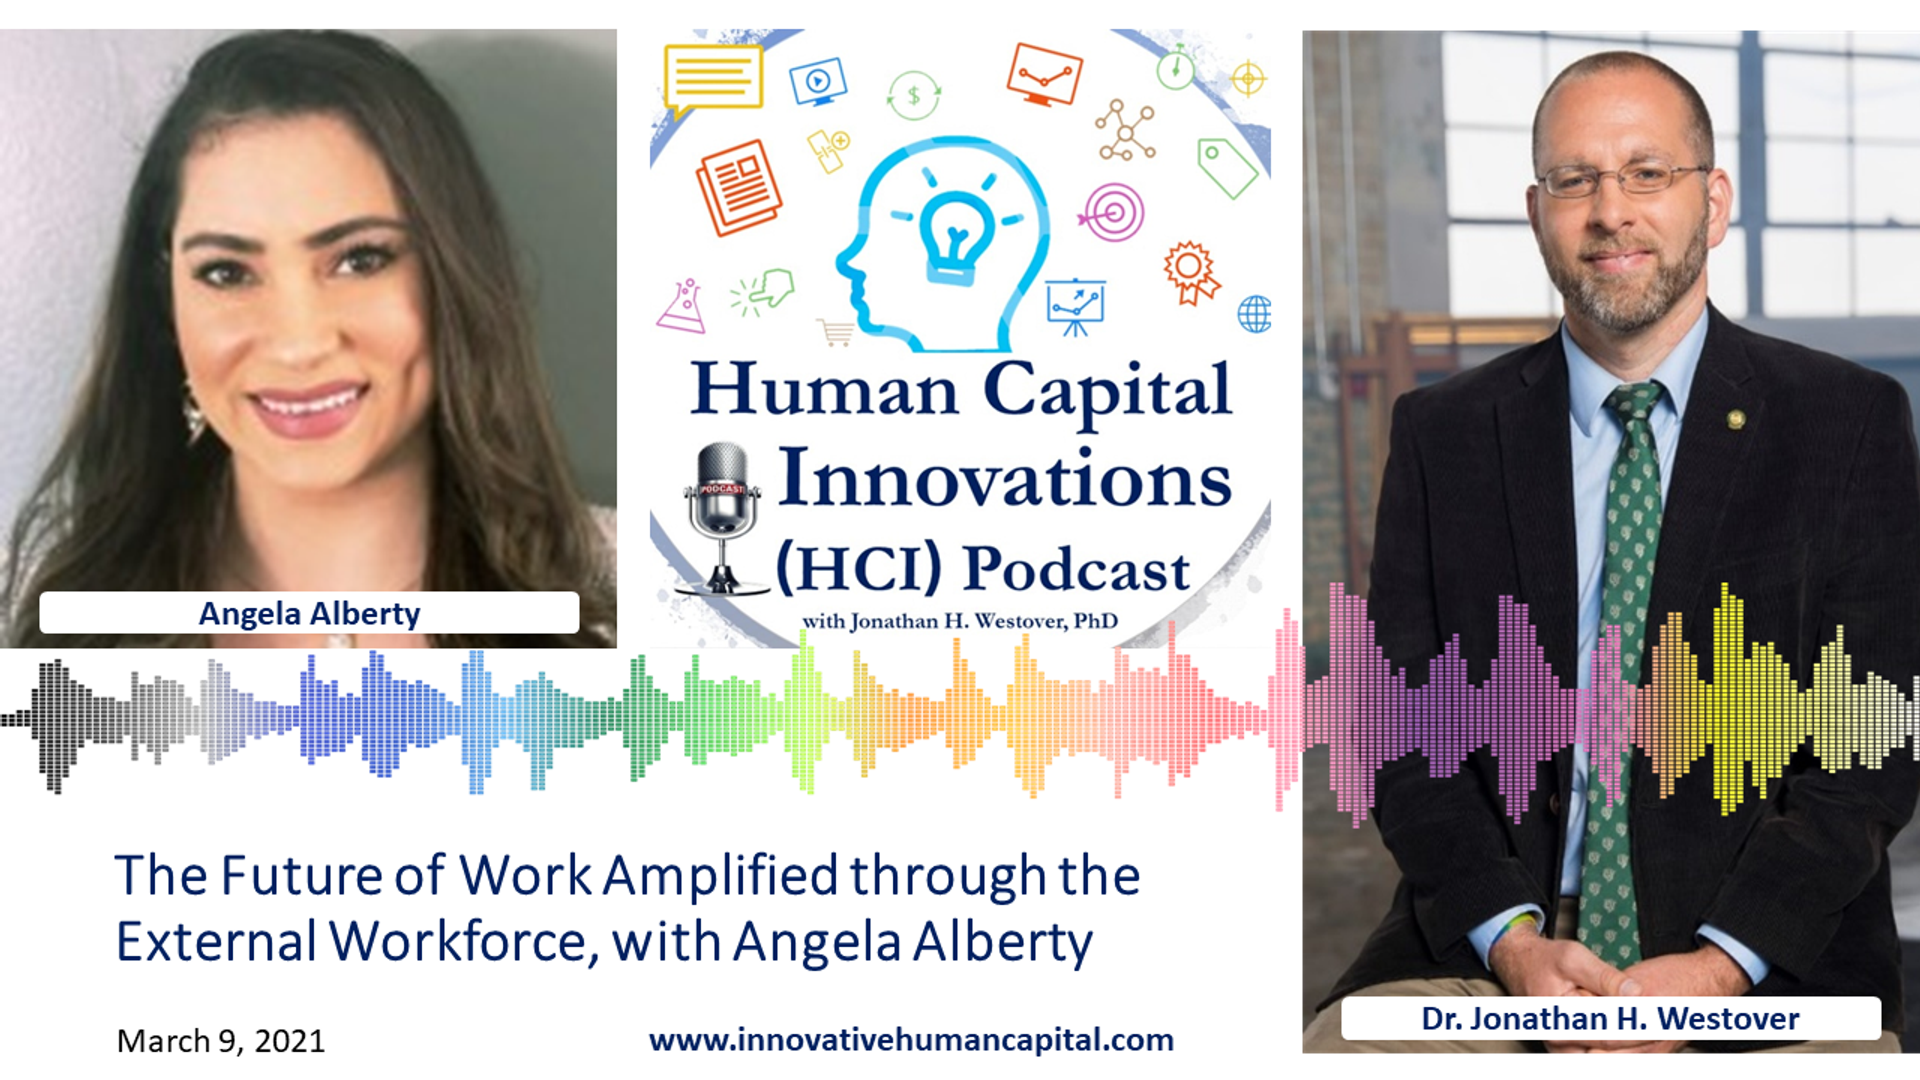 The Future of Work Amplified through the External Workforce